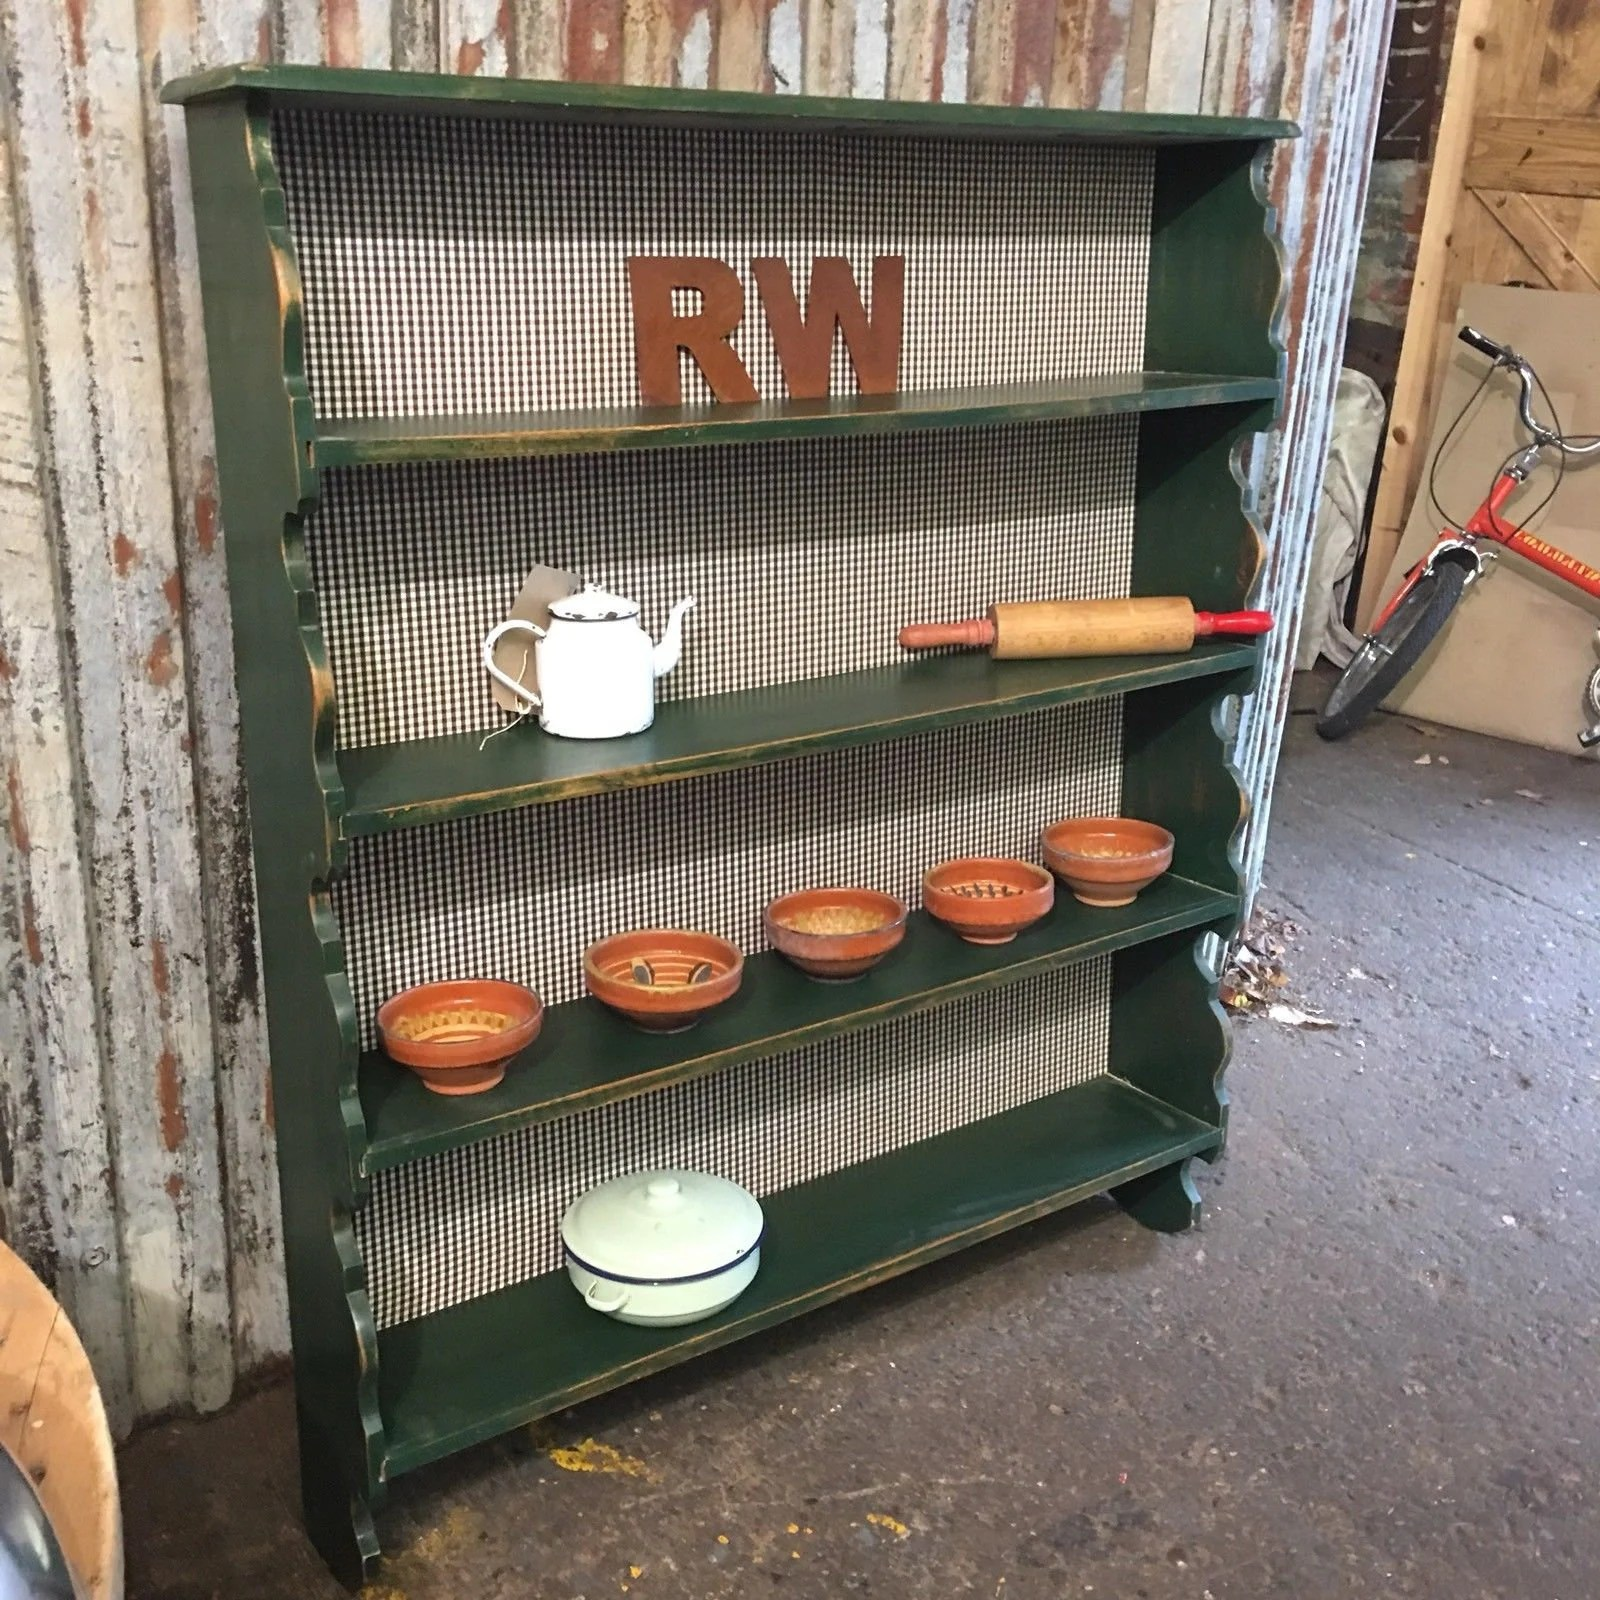 Country Kitchen Shelves Rustic Oak Painted Plate Rack Shelves Green Country Kitchen Farmhouse